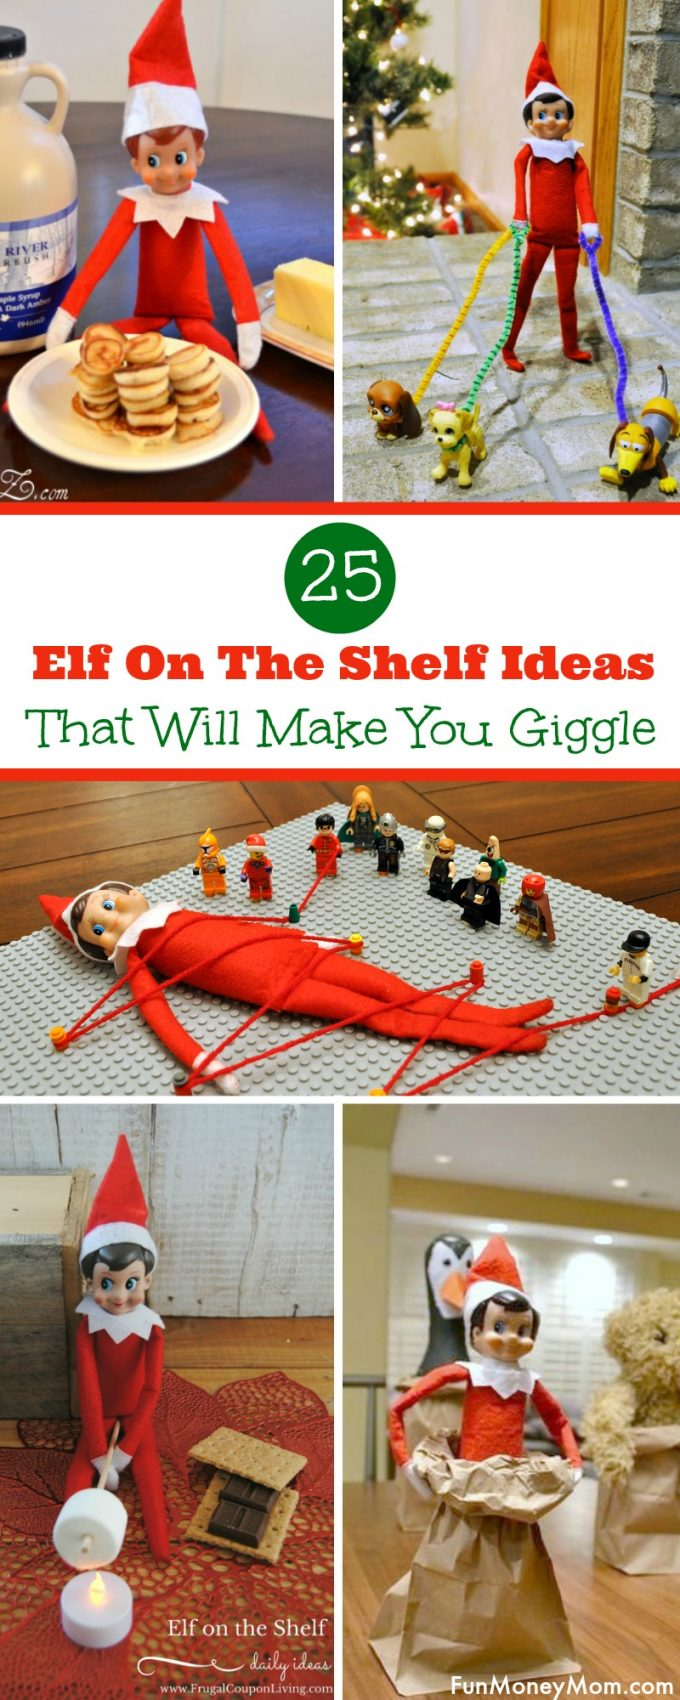 Looking for some great Elf On The Shelf ideas? This little guy sure does turn up in some interesting places and these are sure to make you giggle over the Christmas holidays! #ElfOnTheShelf